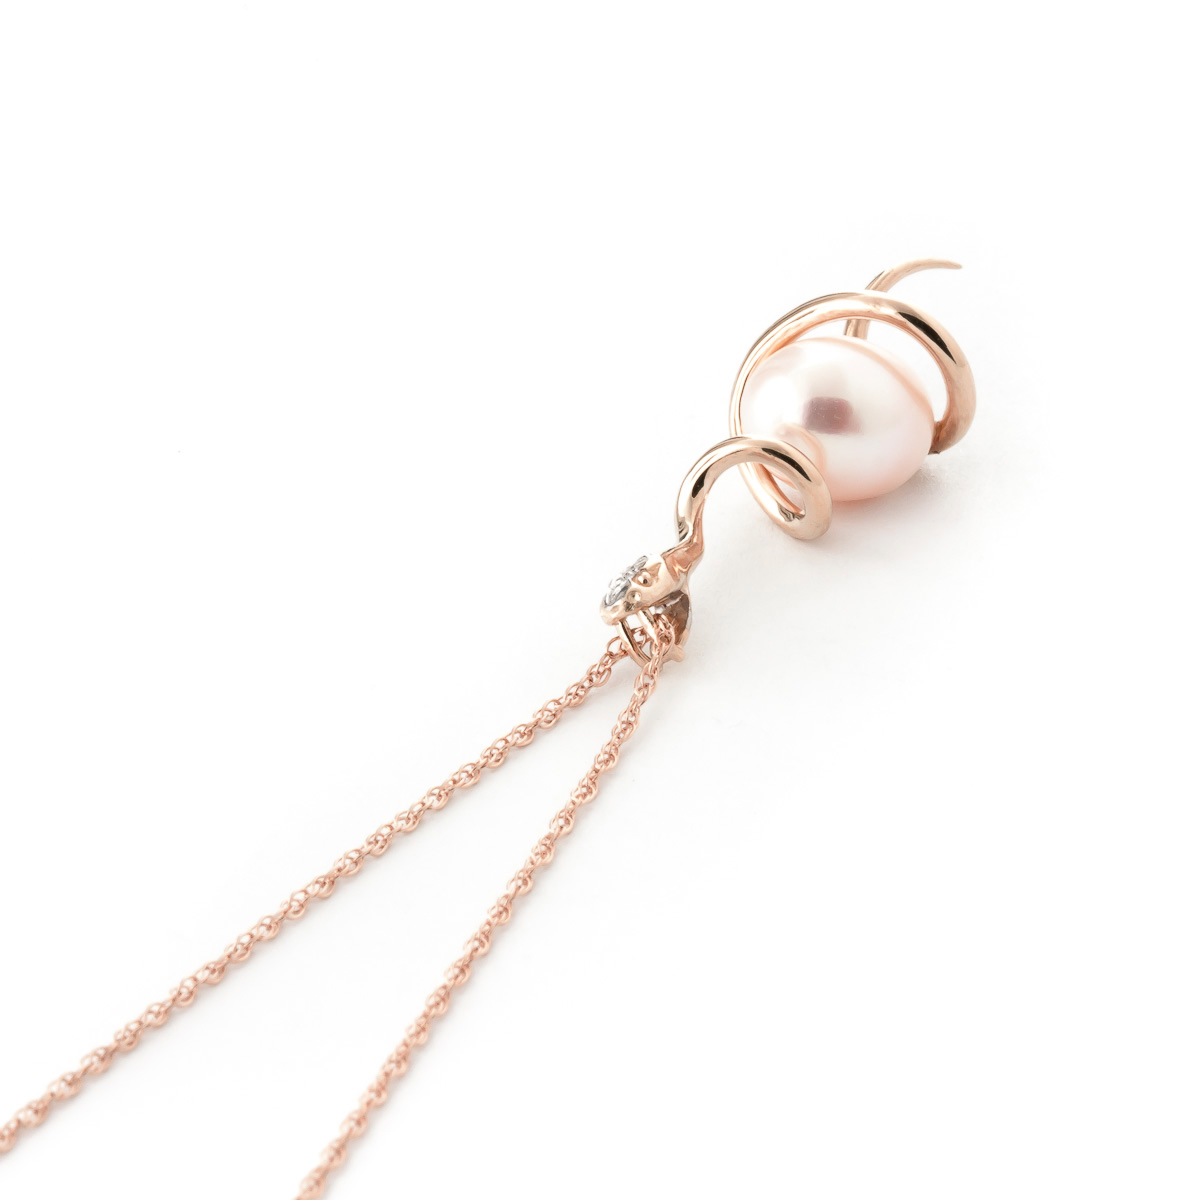 Pearl and Diamond Serpent Pendant Necklace 4.0ct in 9ct Rose Gold